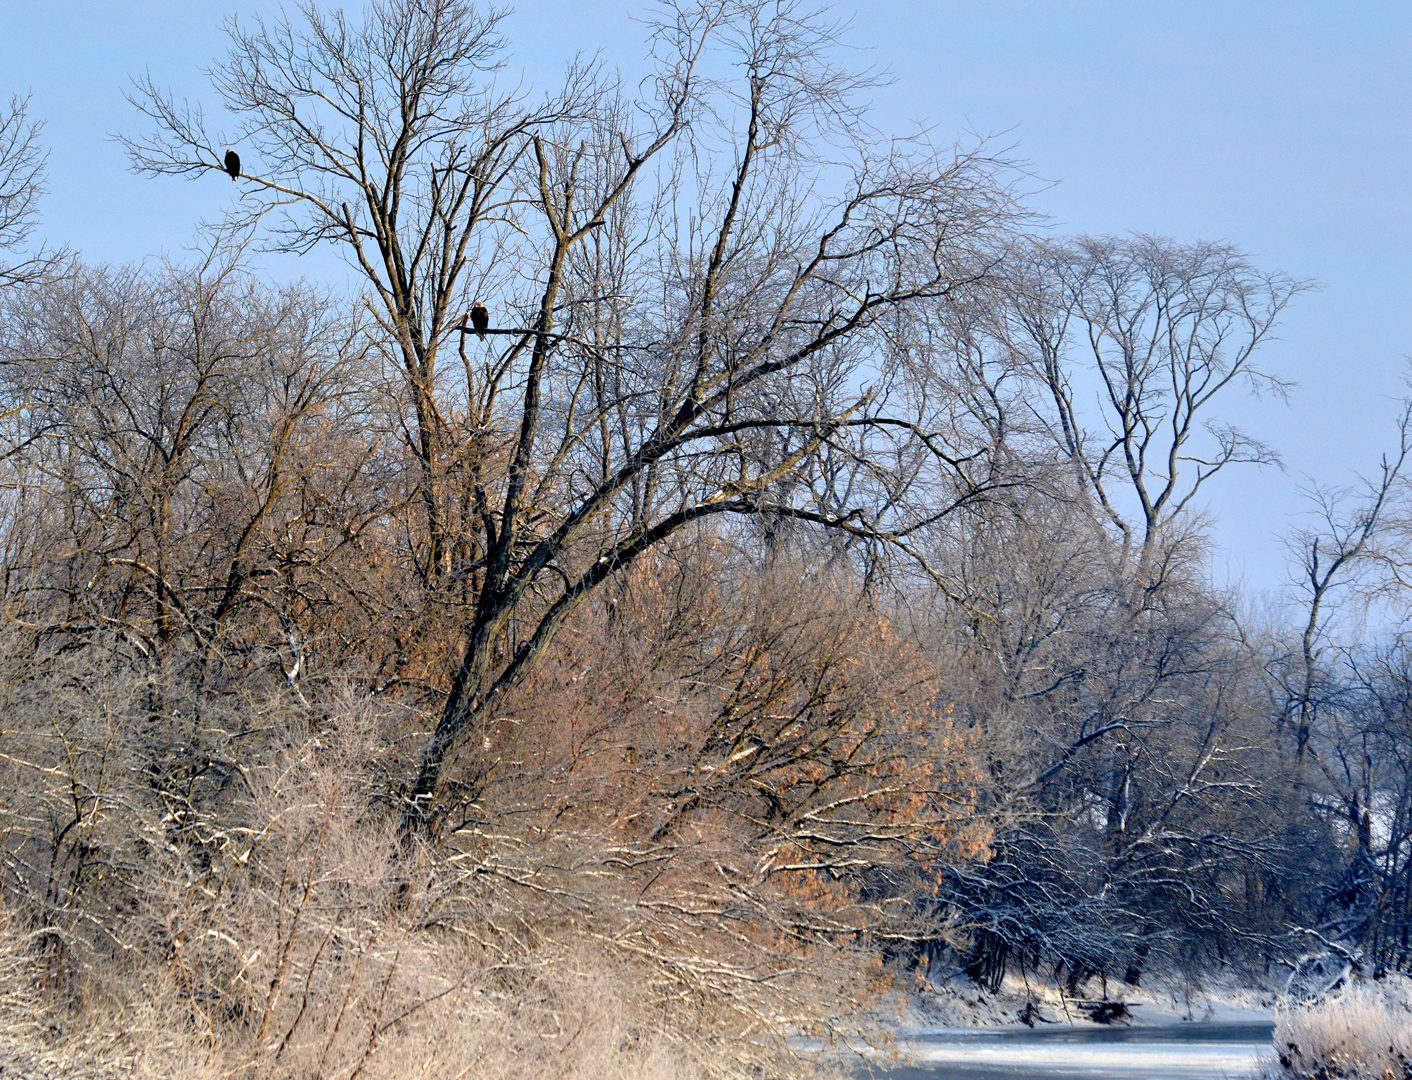 Eagles perch in a sycamore tree along the Olentangy River at Highbanks Metro Park. (photo by Tom Kitchen)